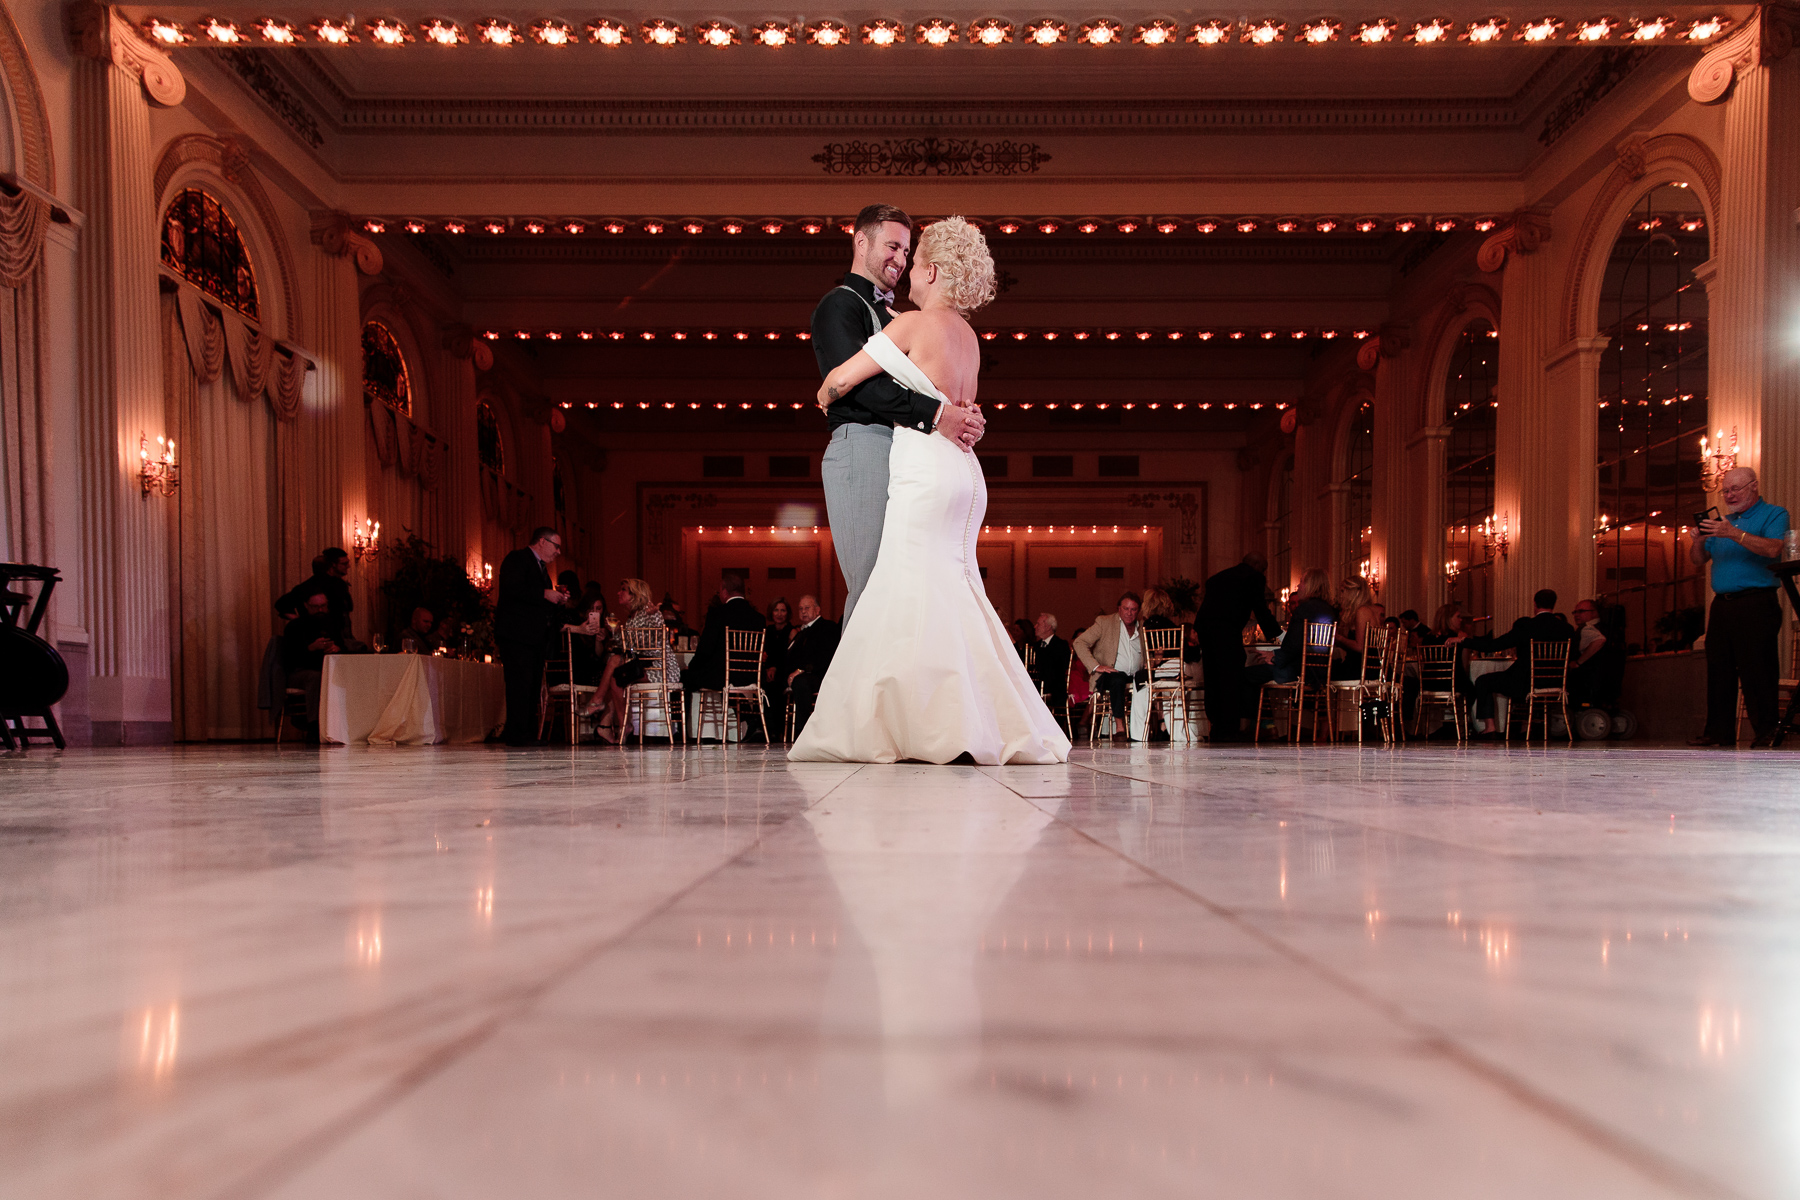 Westin Columbus Wedding- Robb McCormick Photography (117 of 127).jpg